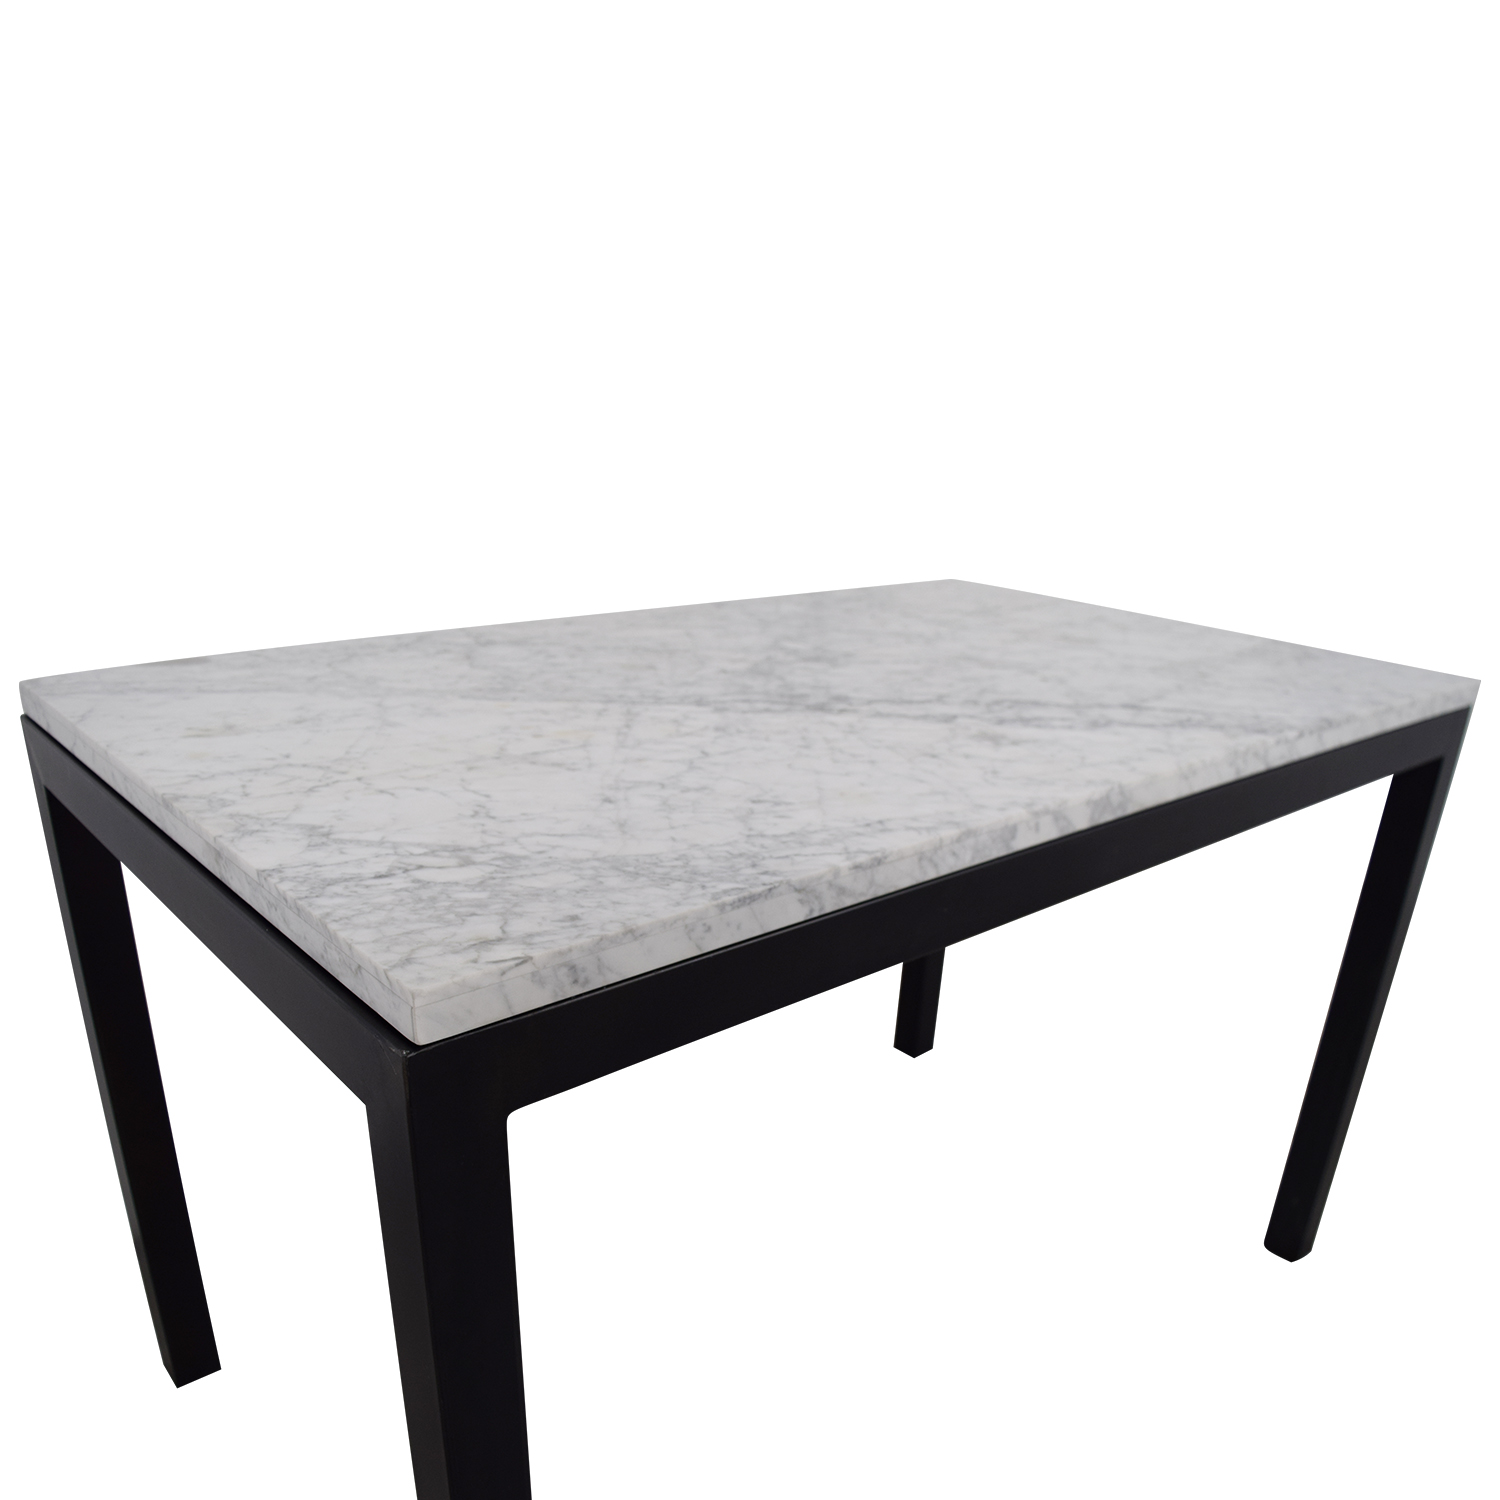 60 off crate barrel crate barrel parsons marble top steel base dining table tables